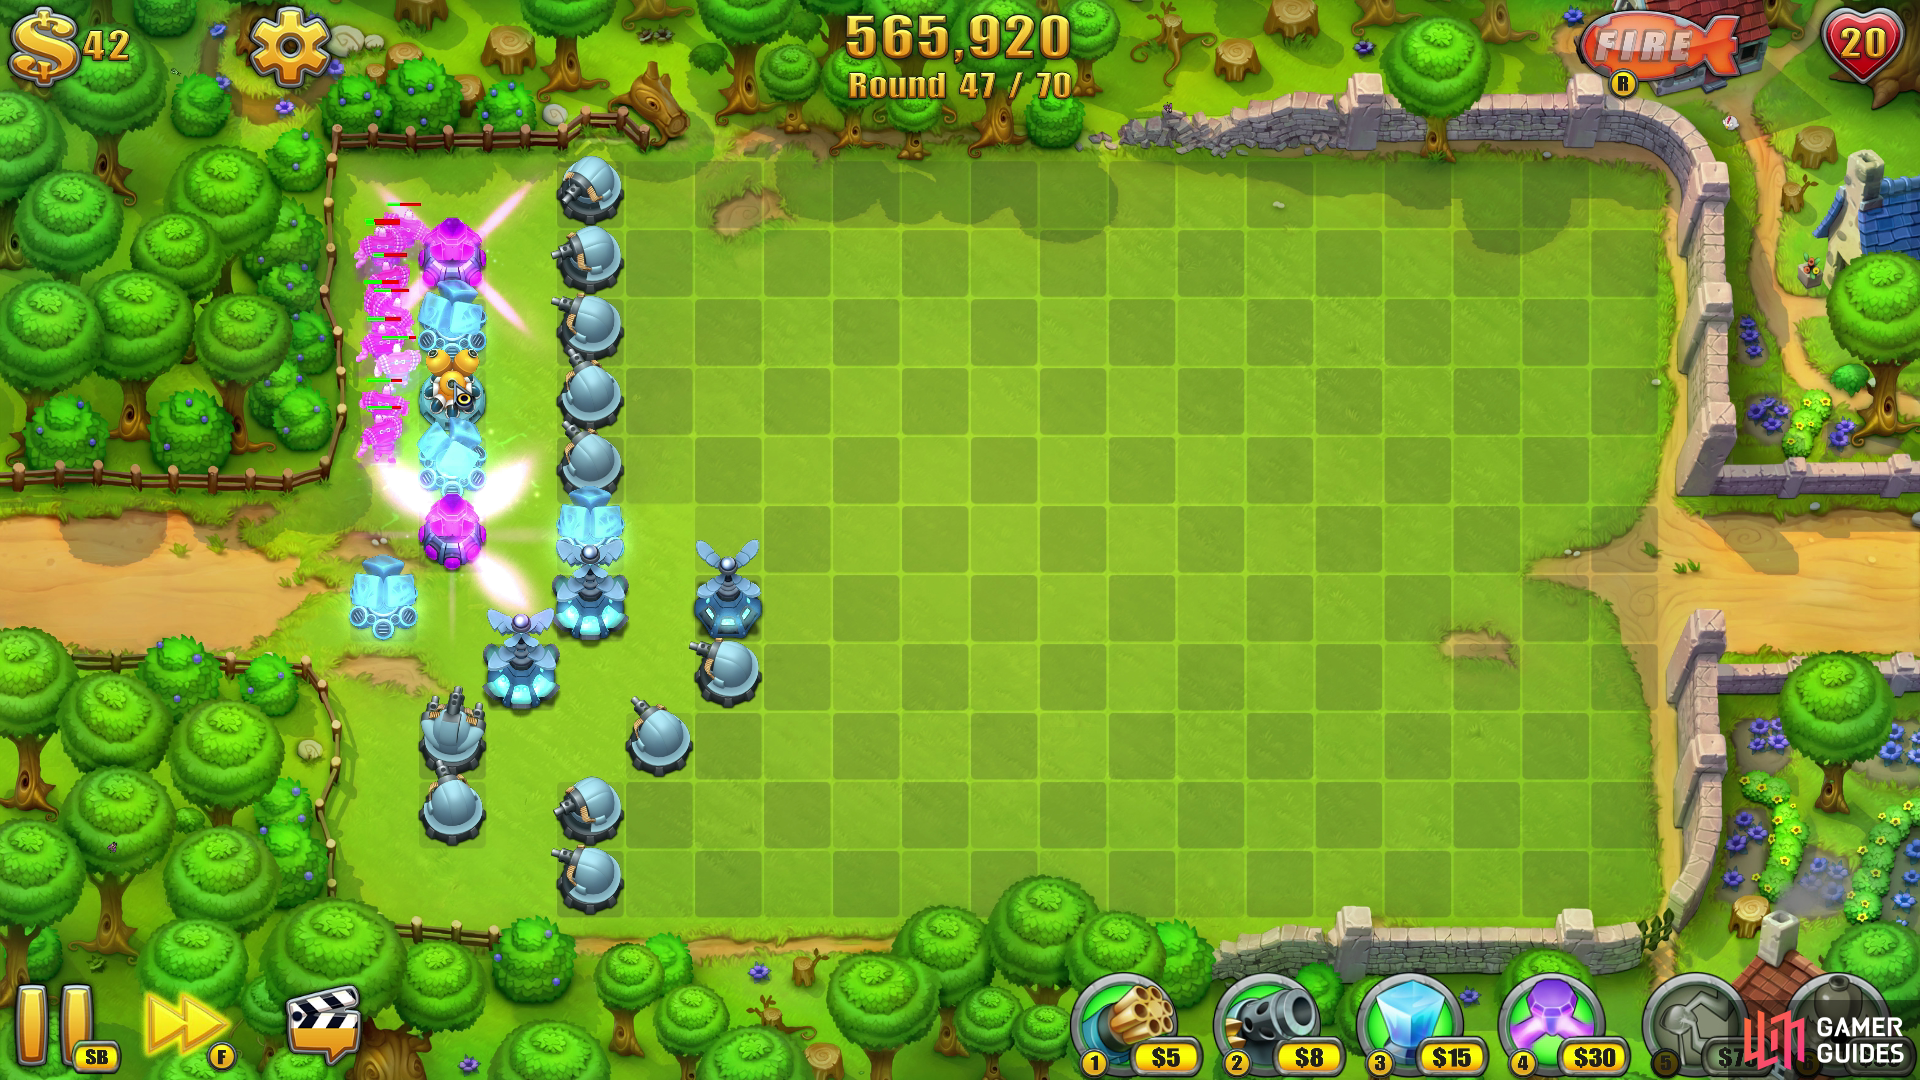 Funneling enemies down a narrow path of towers will cause maximum damage if you line up your towers correctly.